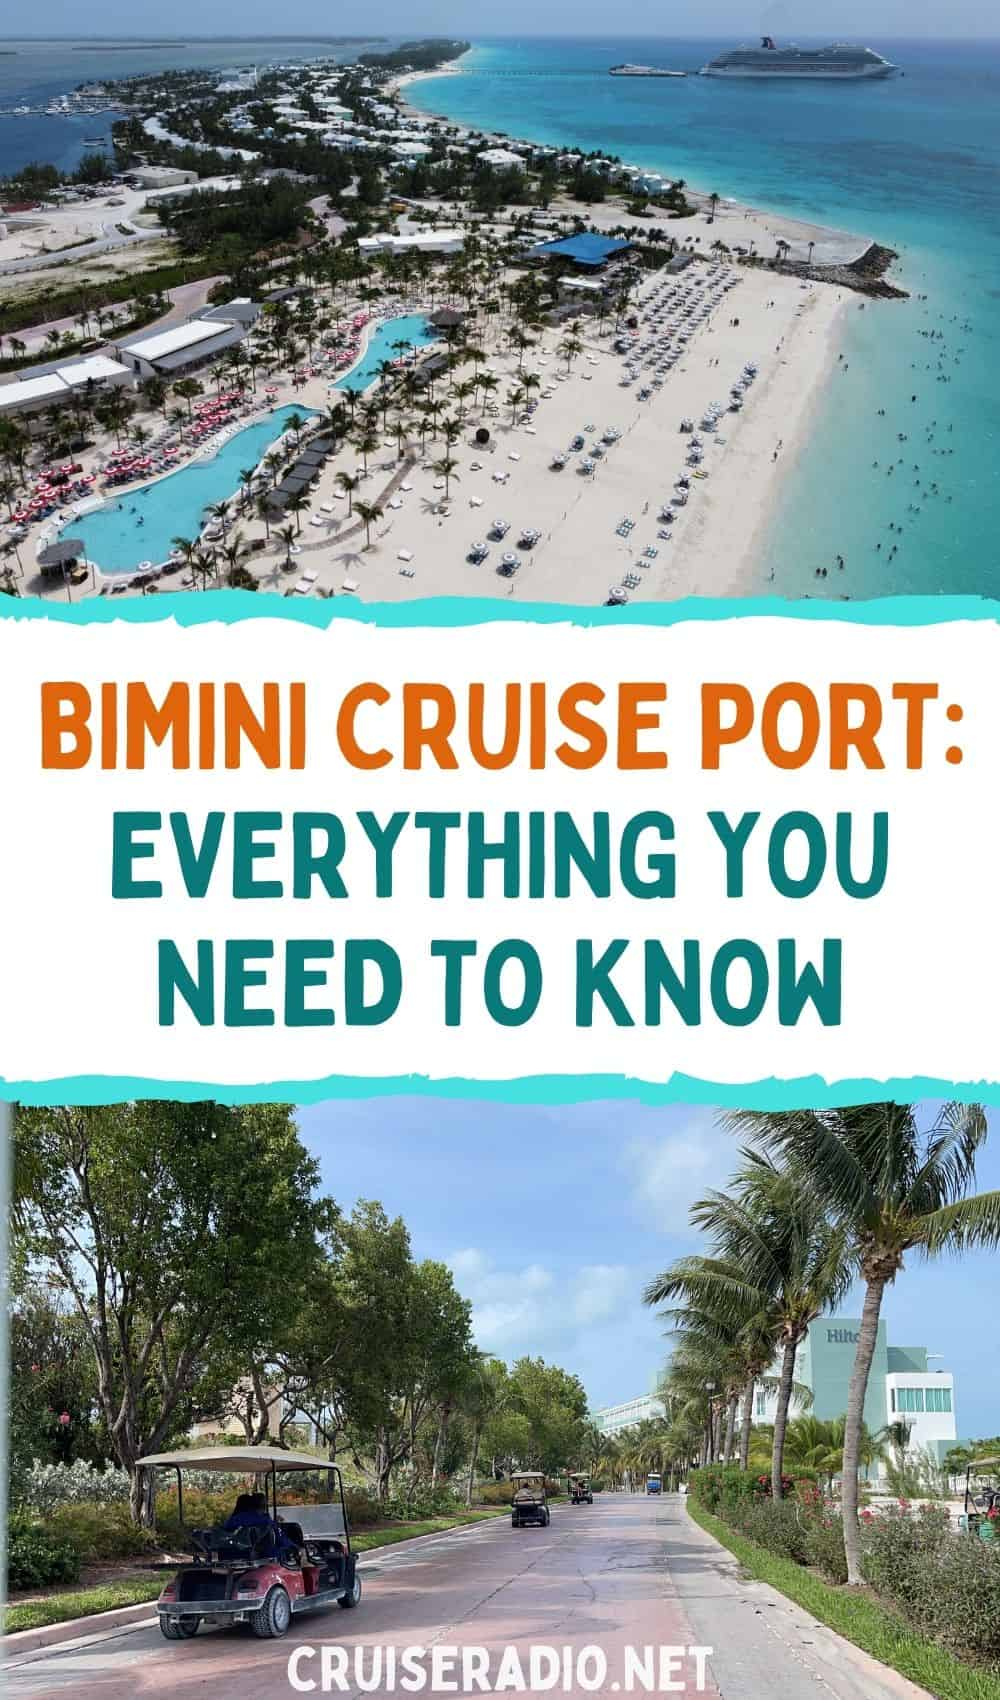 bimini cruise port: what you need to know